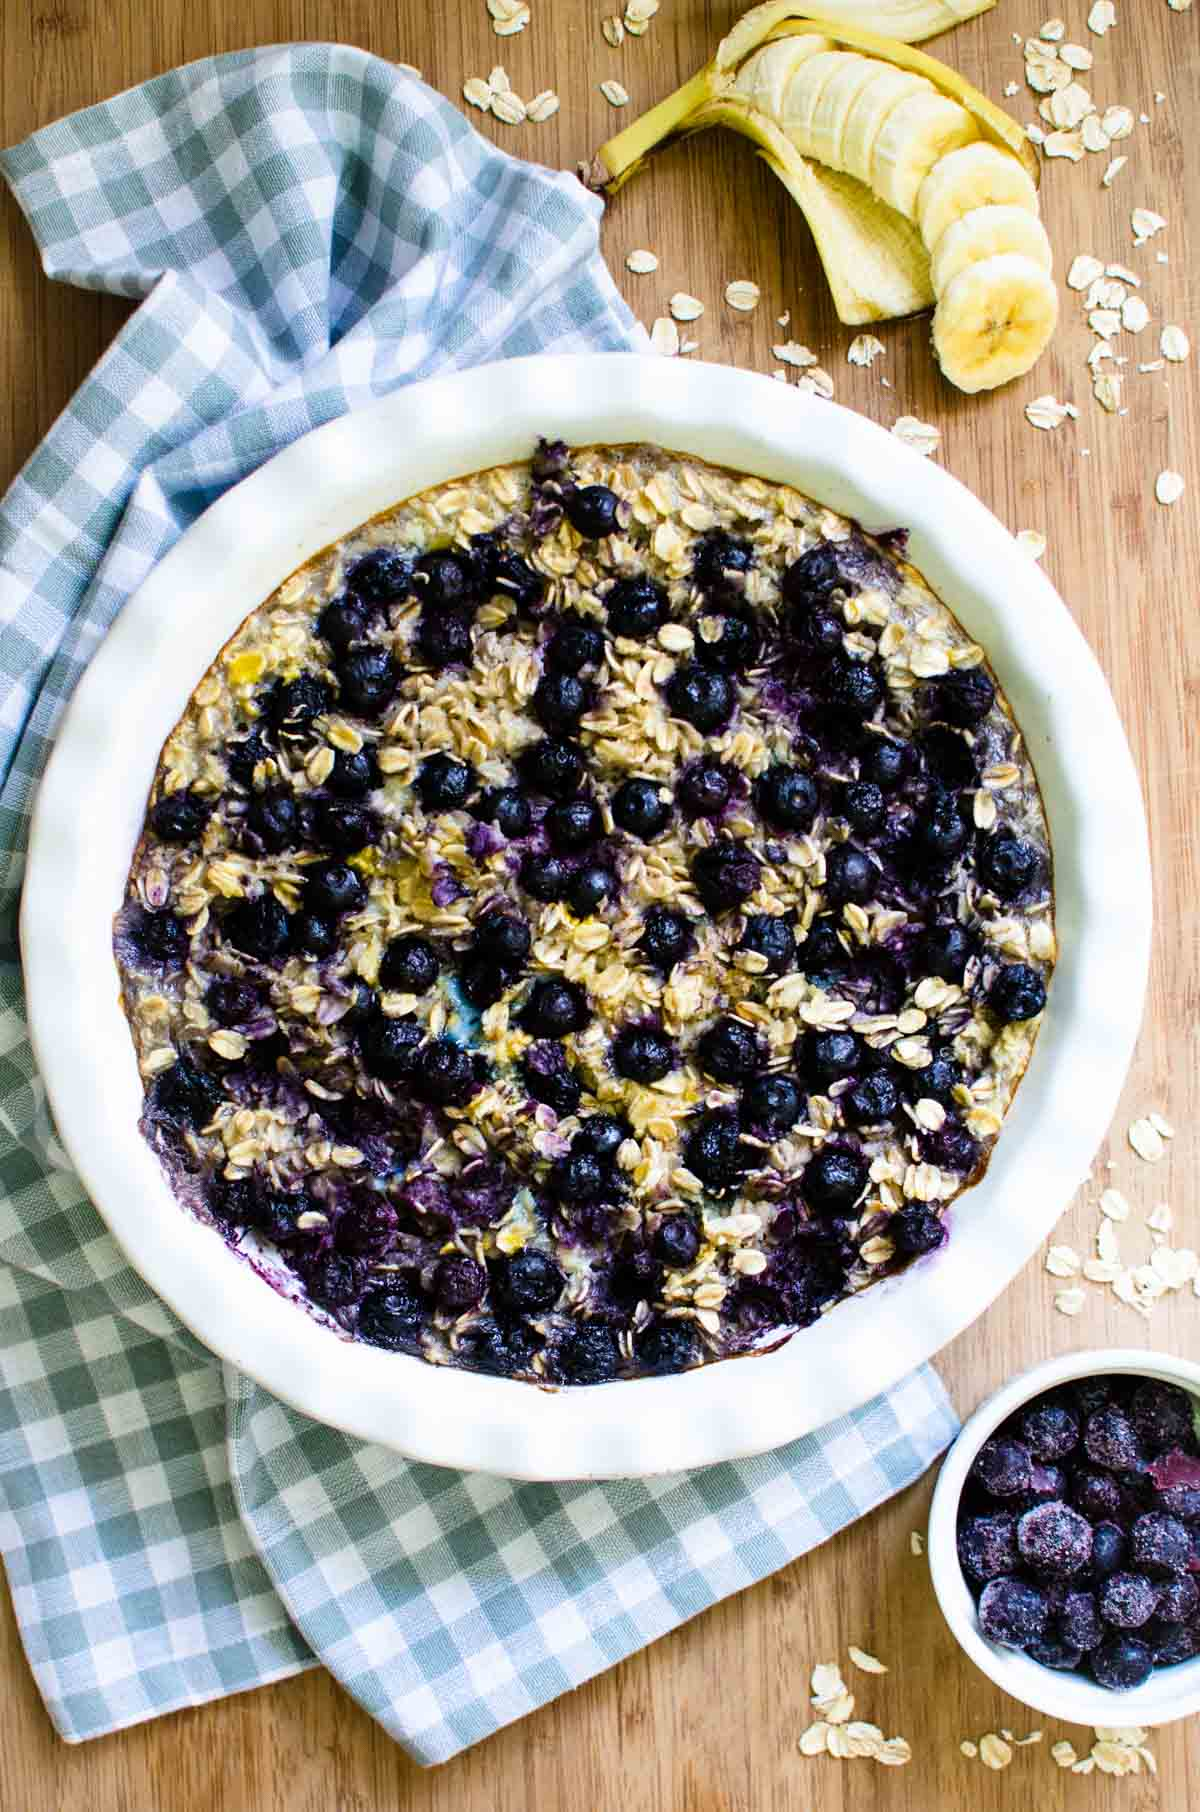 This recipe for Caramelized Banana Blueberry Baked Oatmeal is so easy to make and is perfect to have for breakfast during the week! It packs easily for work and the leftovers are delicious!